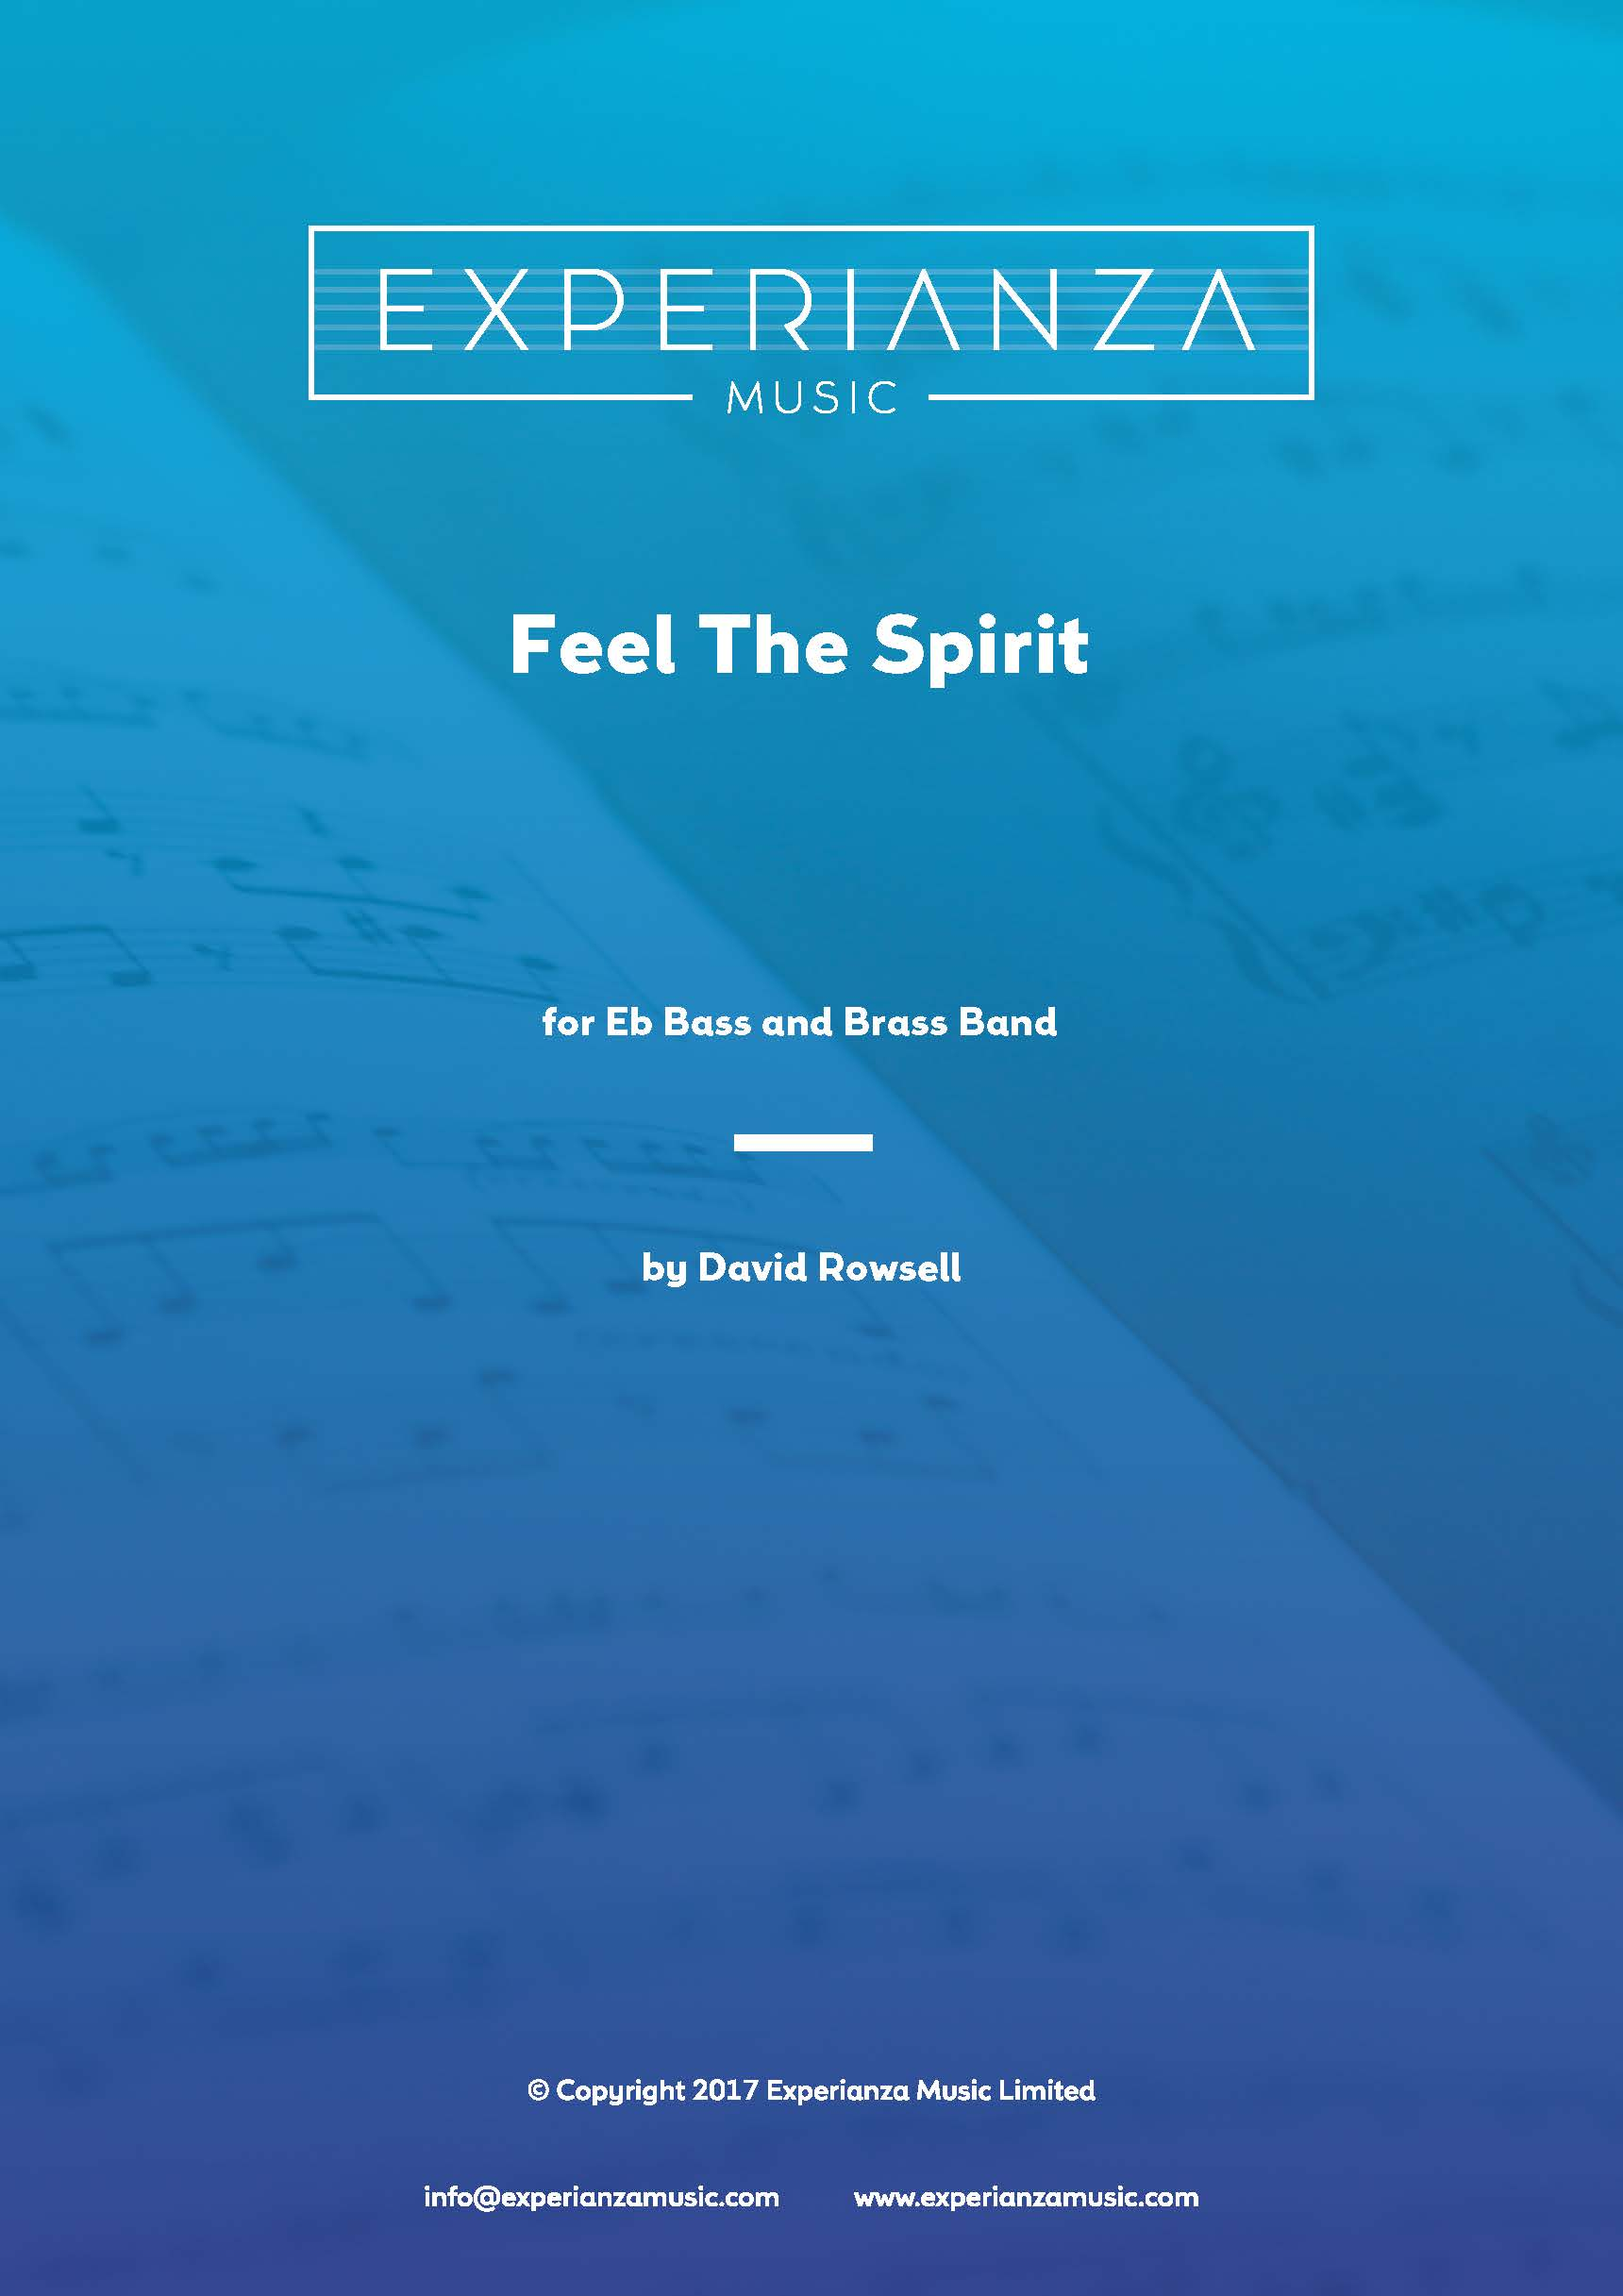 Feel the Spirit (Brass Band - Score and Parts)